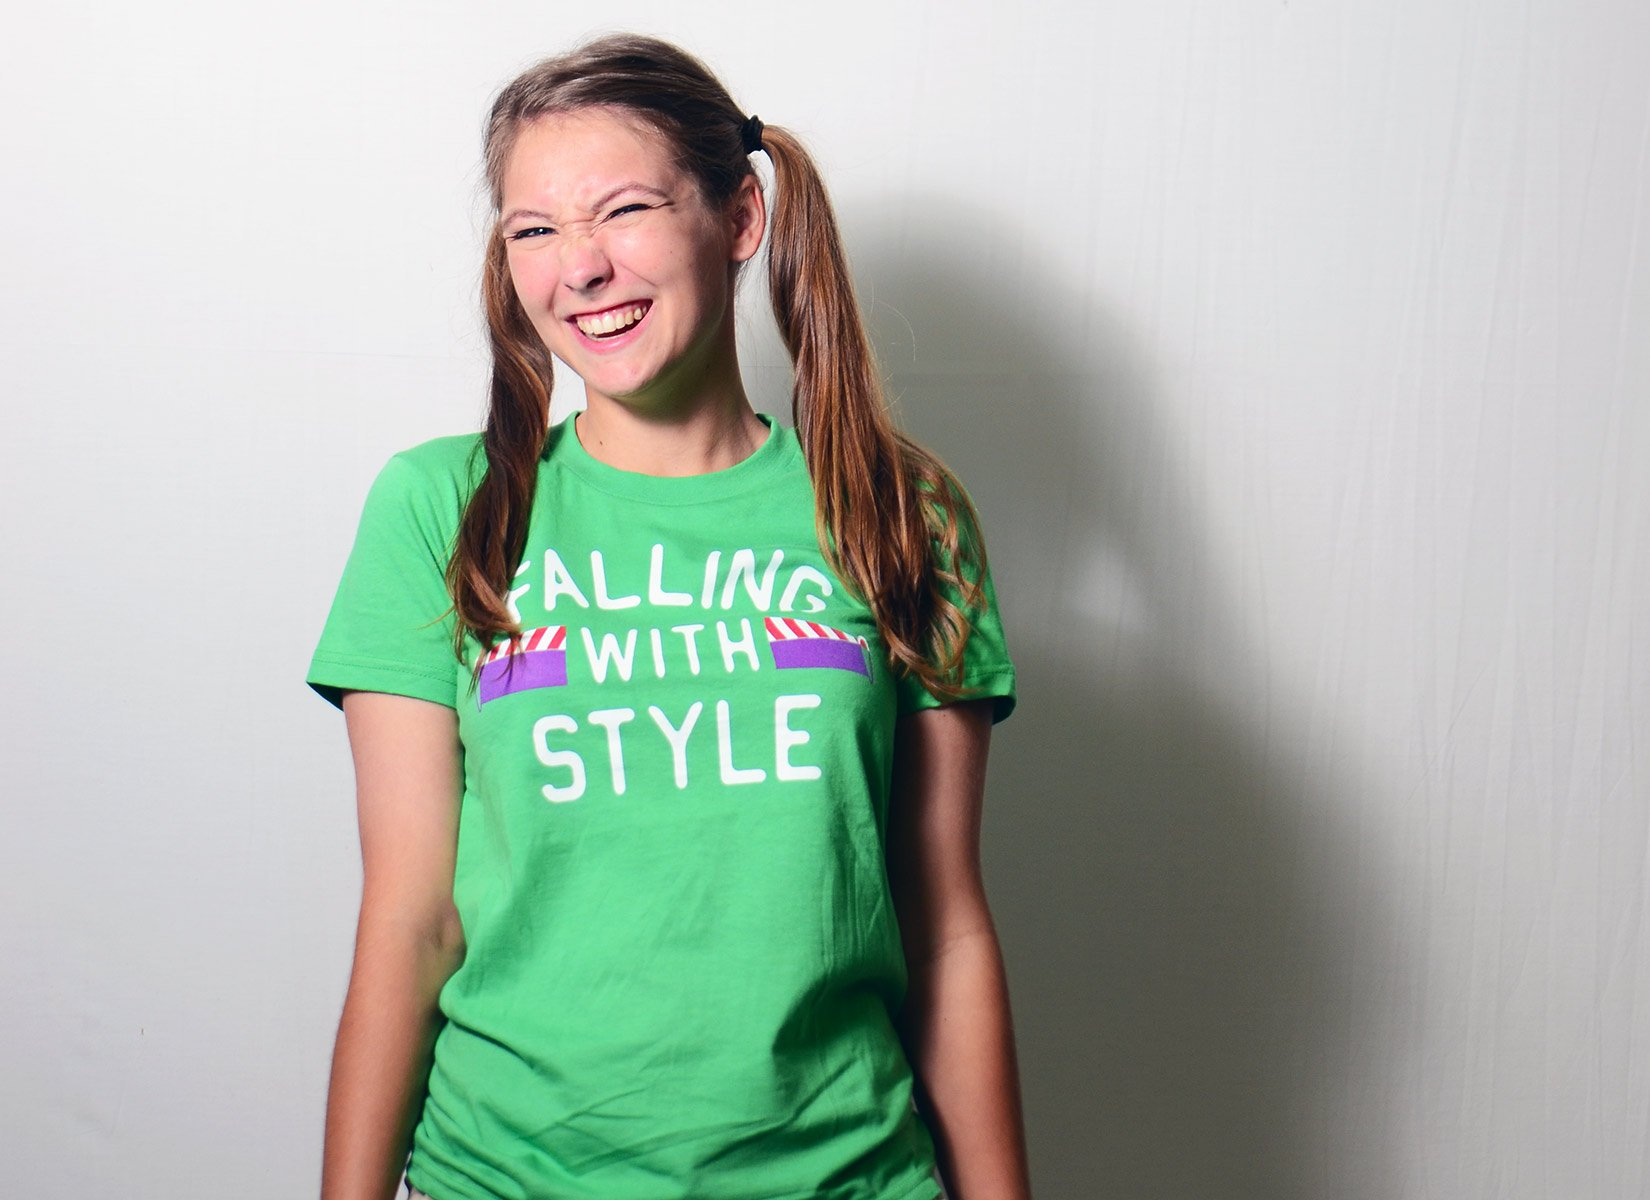 Falling With Style on Juniors T-Shirt